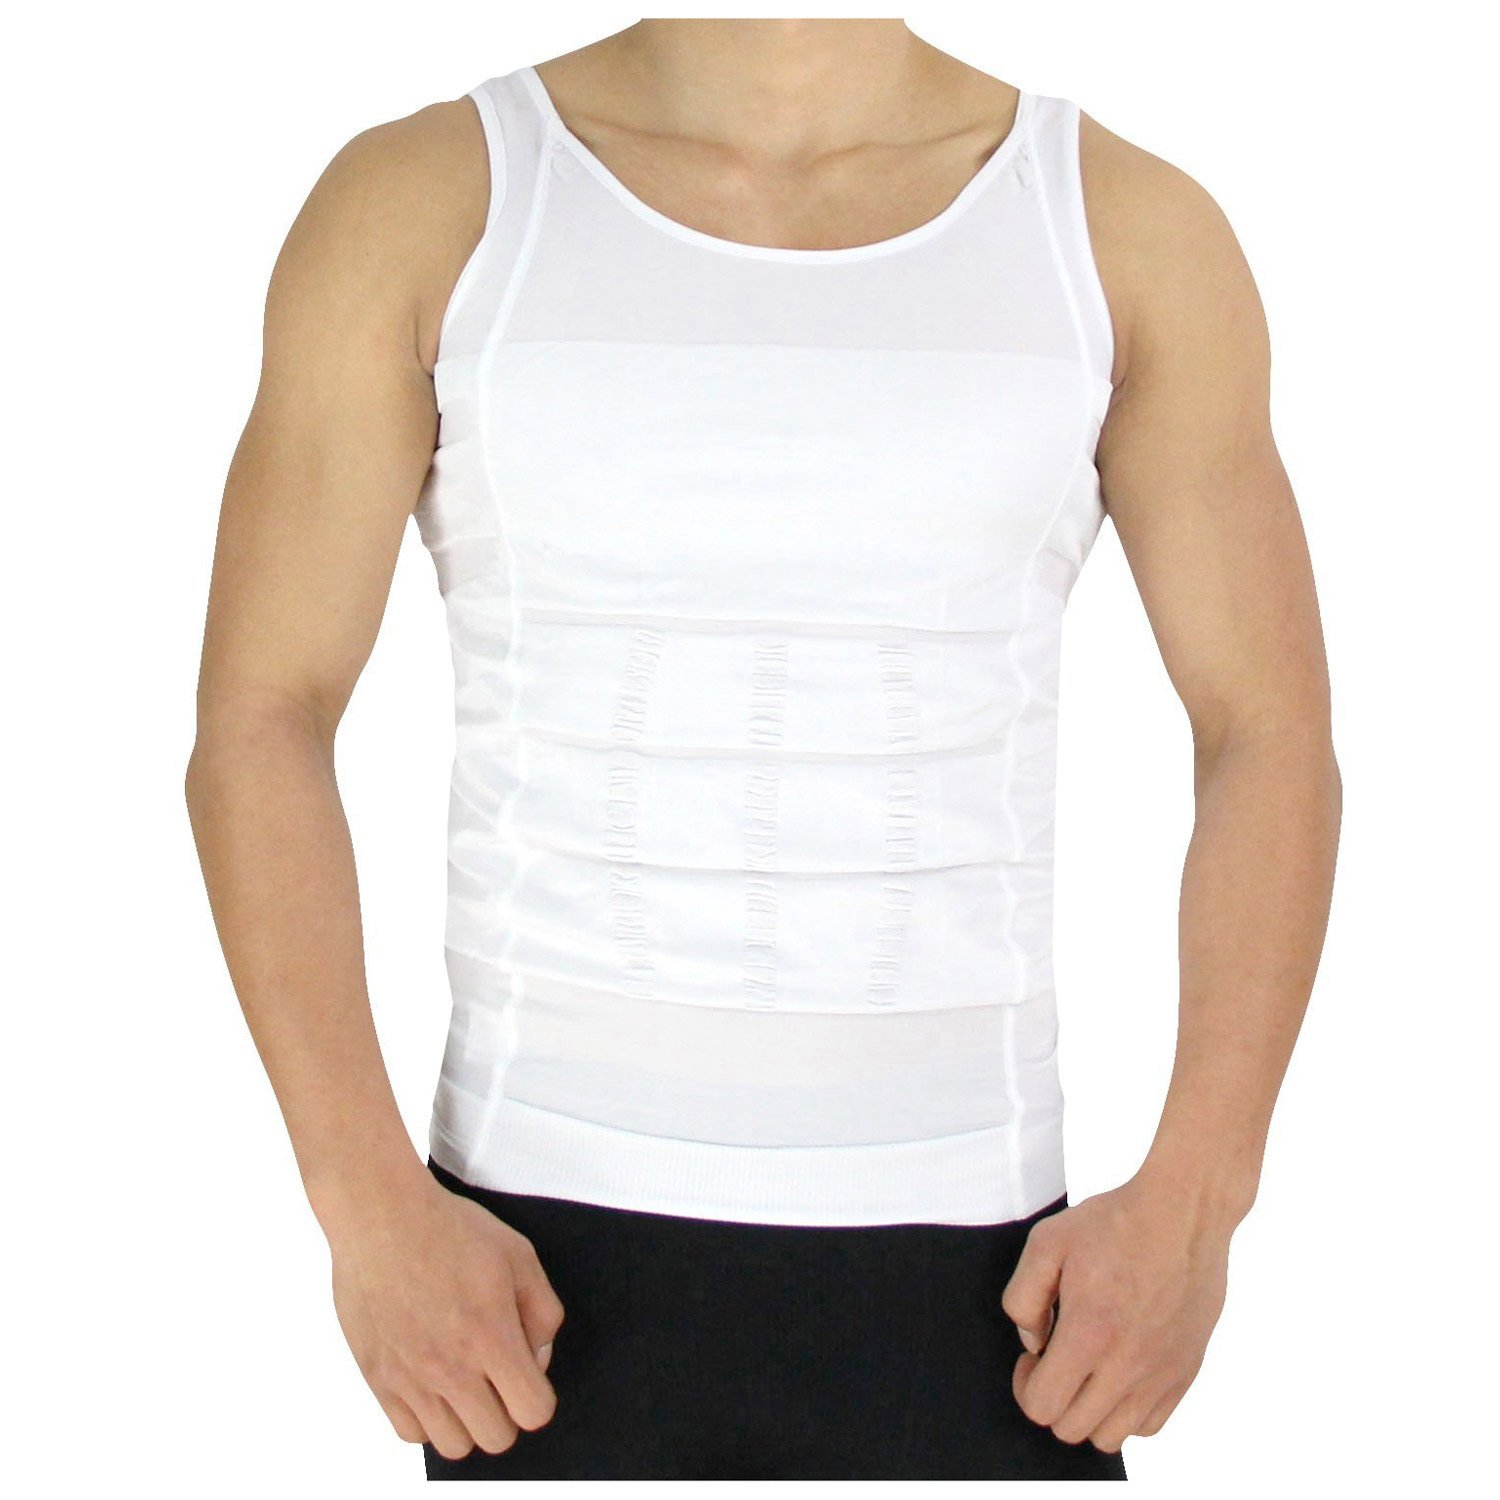 PU Health Slimming Tank Top Compression Shirt, Body Shaper Workout Tops Training Undershirts, 0.9 Pound